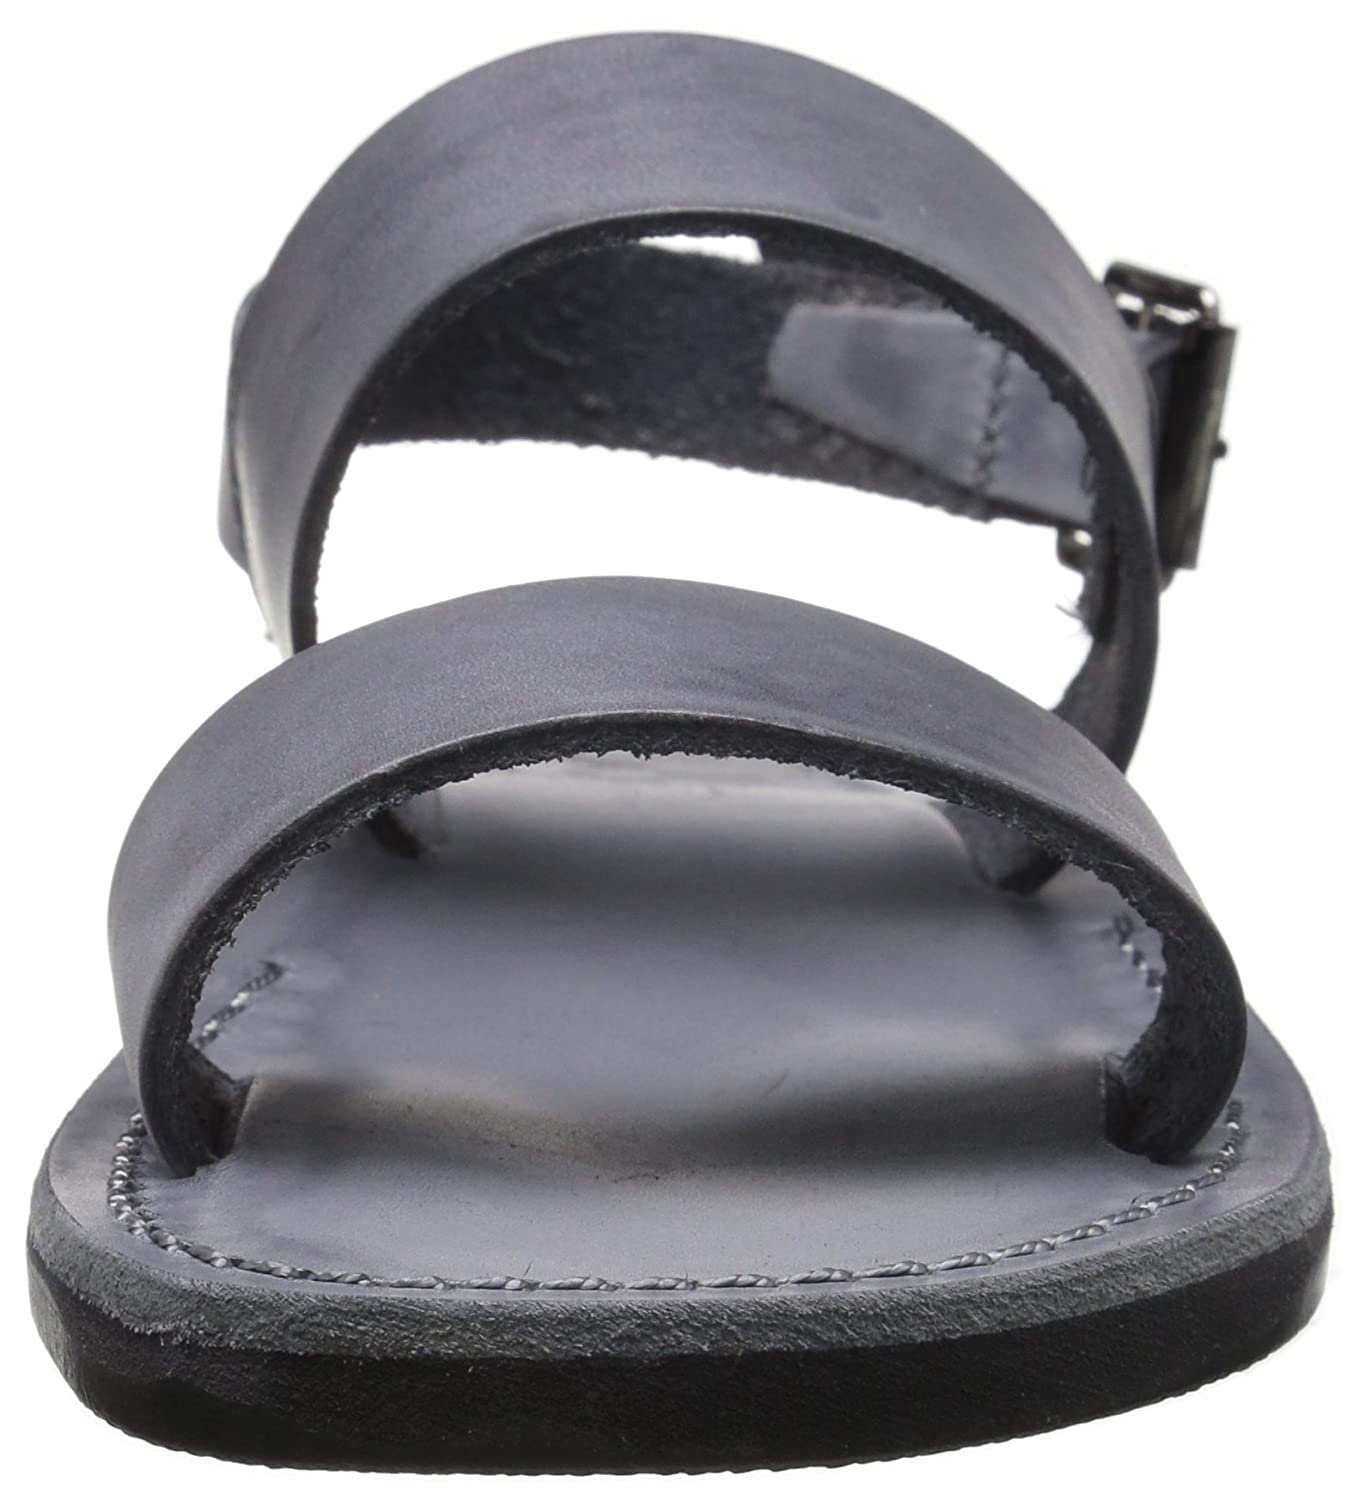 Jerusalem Sandals Women's Golan Rubber Flat Sandal B018HQ2GQO 38 M EU / 7 B(M) US|Gray